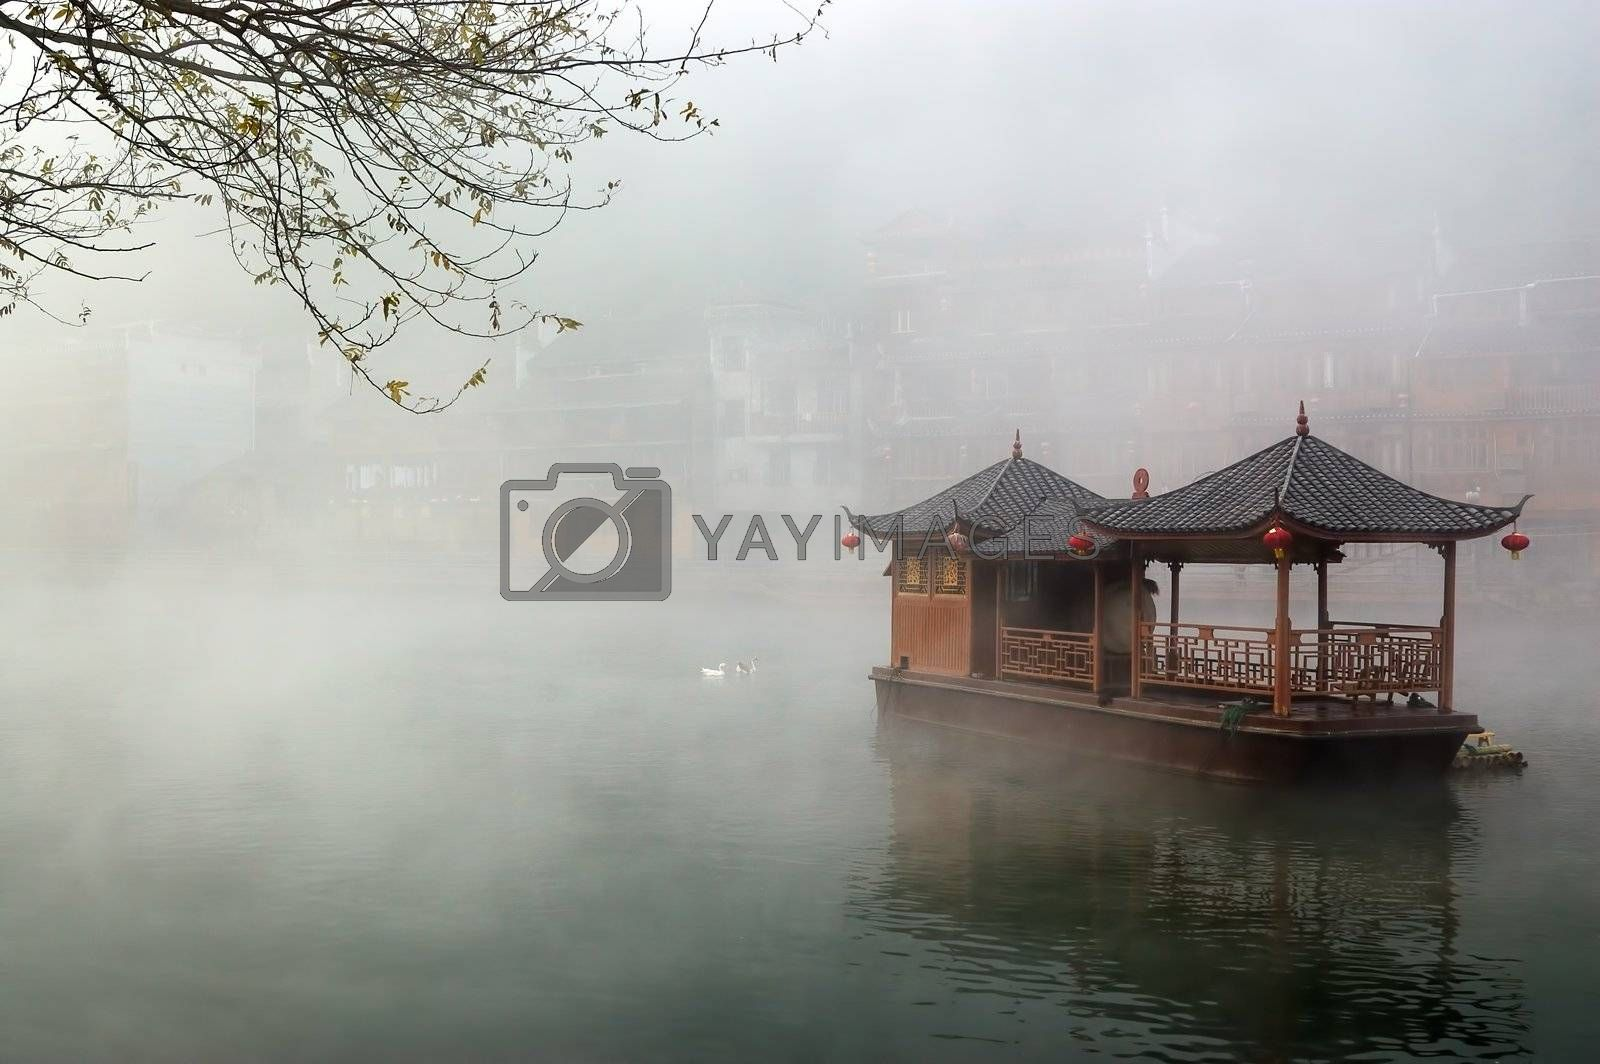 China landscape of boat on foggy river with traditional building background in Hunan province